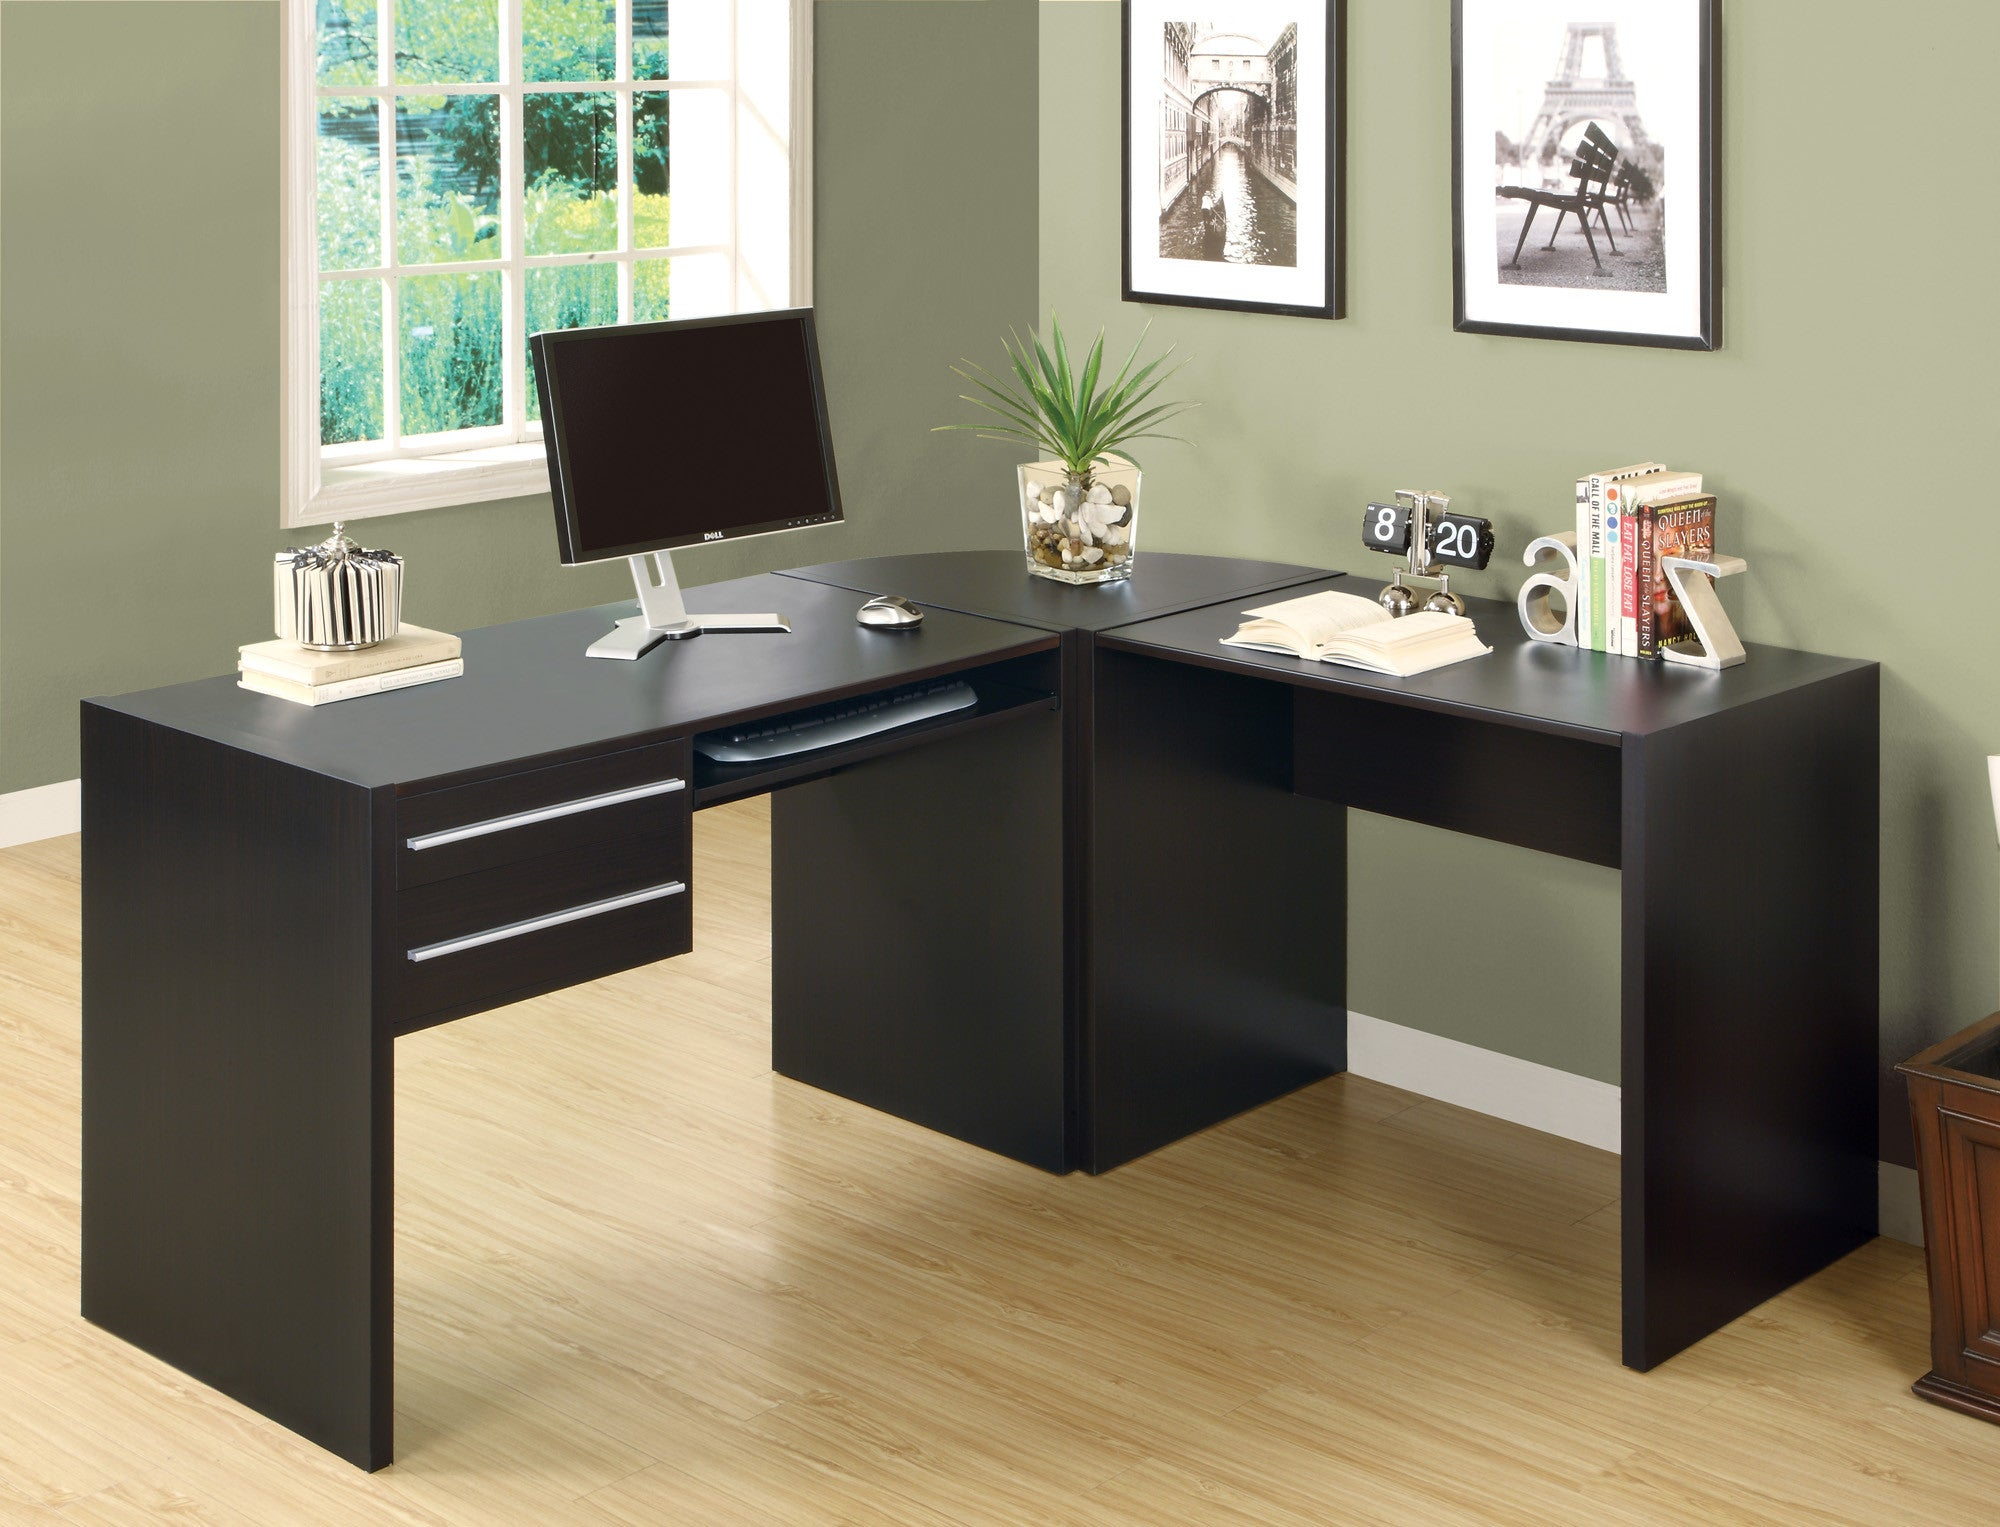 L-shaped Contemporary Office Desk in Cappuccino Finish